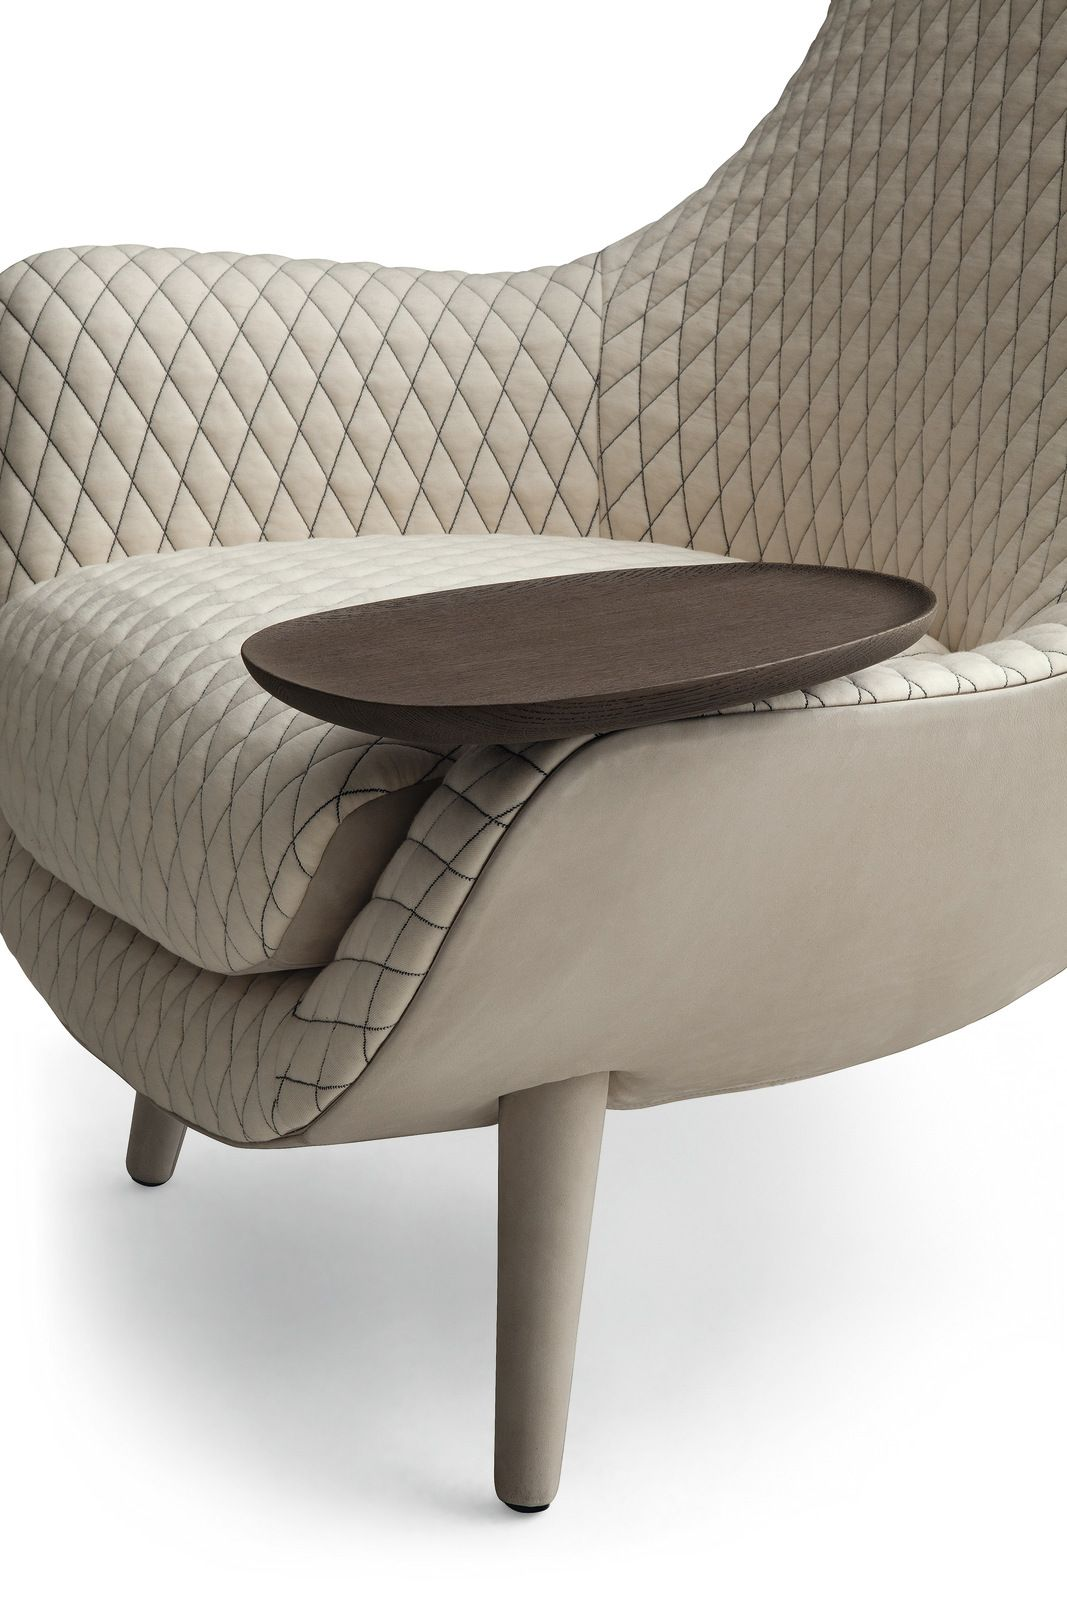 Furniture swivel and tub chairs dori fabric swivel cuddle chair - Upholstered Fabric Armchair With Armrests Mad King Mad Collection By Poliform Design Marcel Wanders